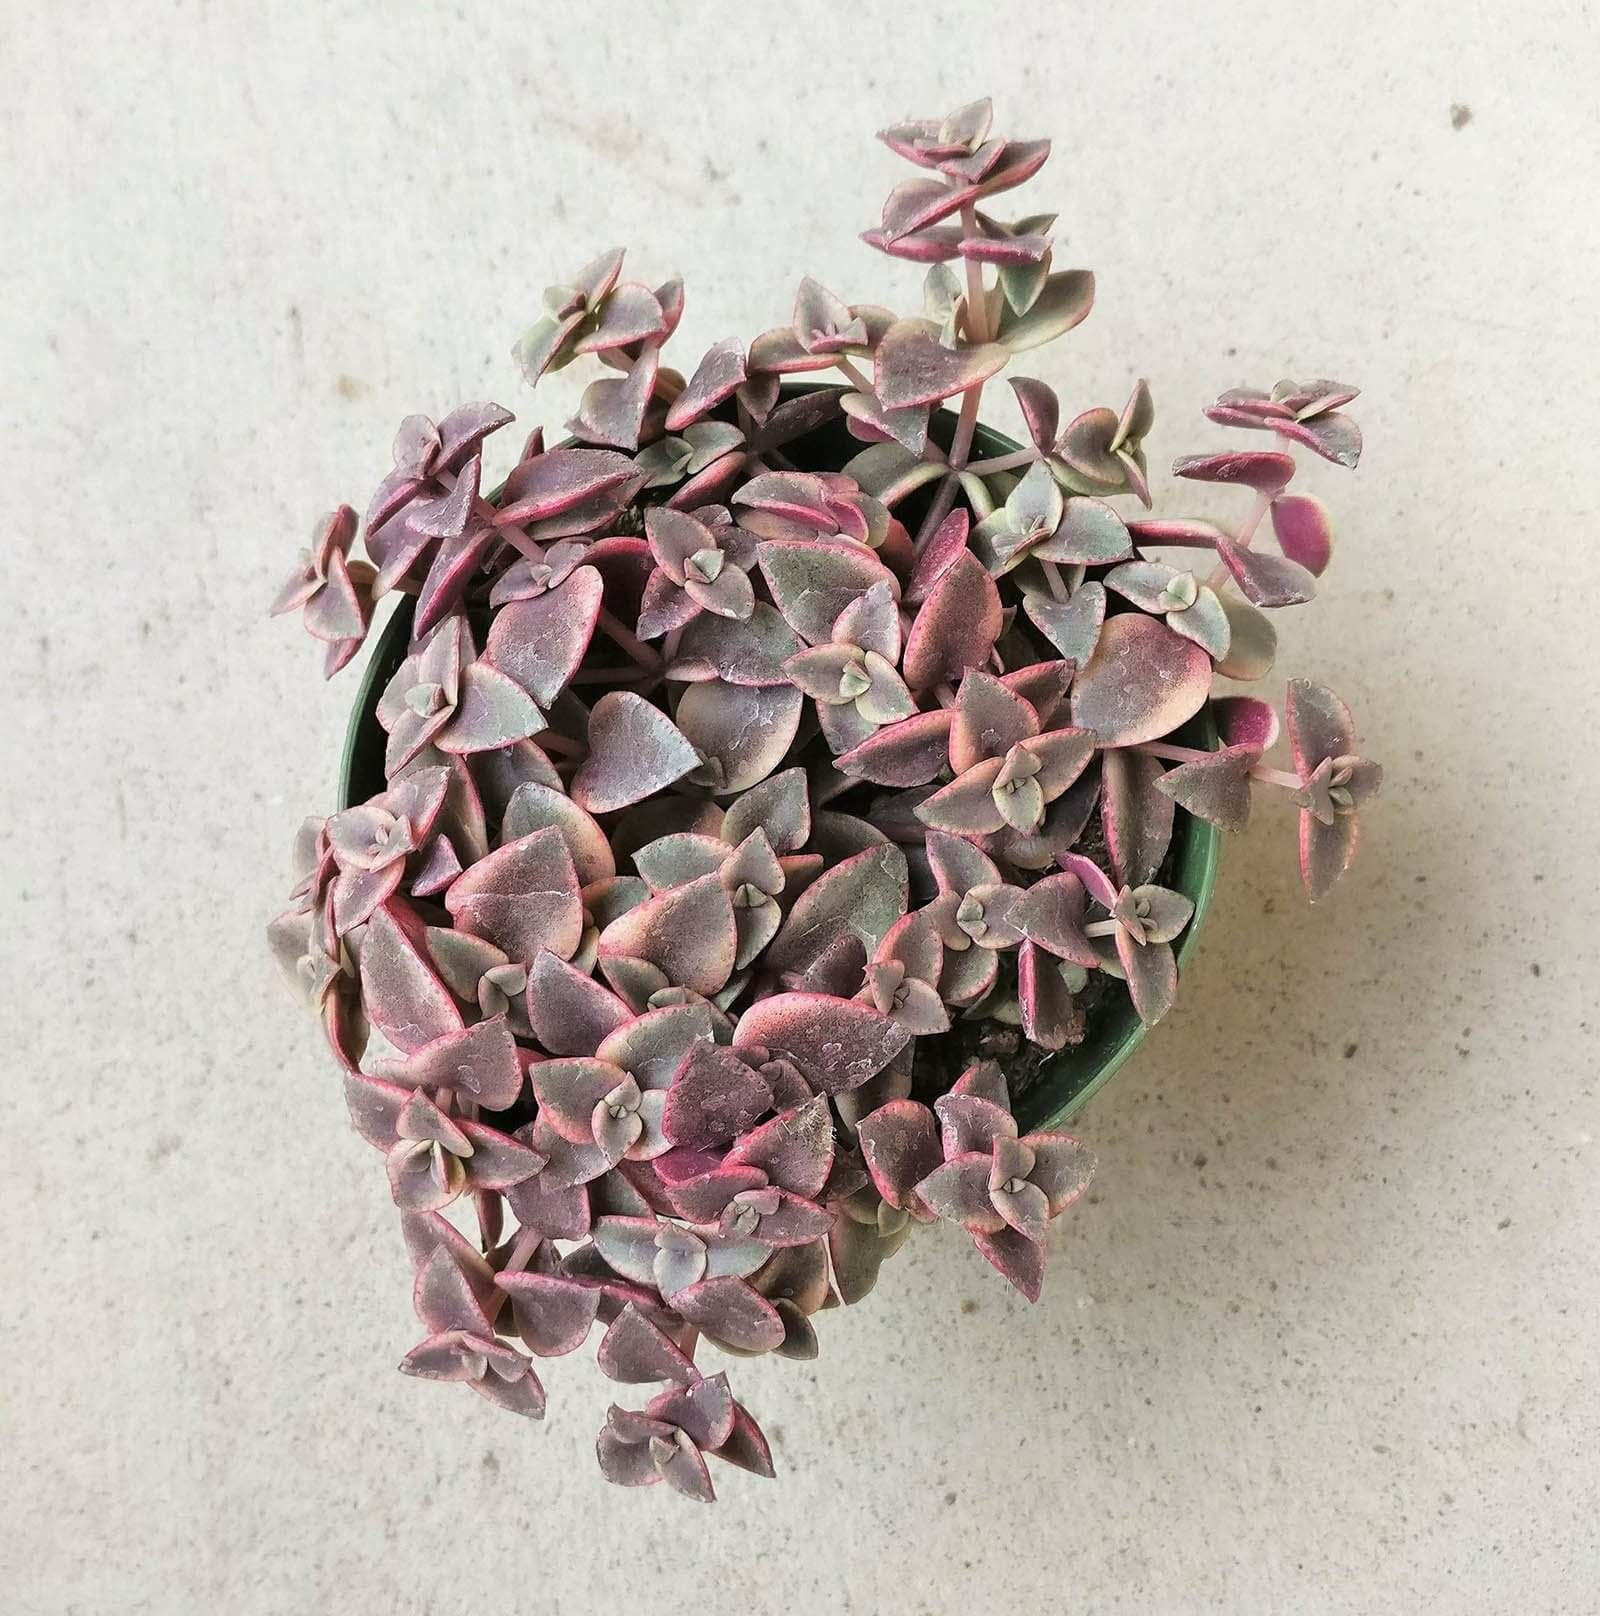 Calico Kitten Crassula Calico Kitten Succulents Succulents For Sale